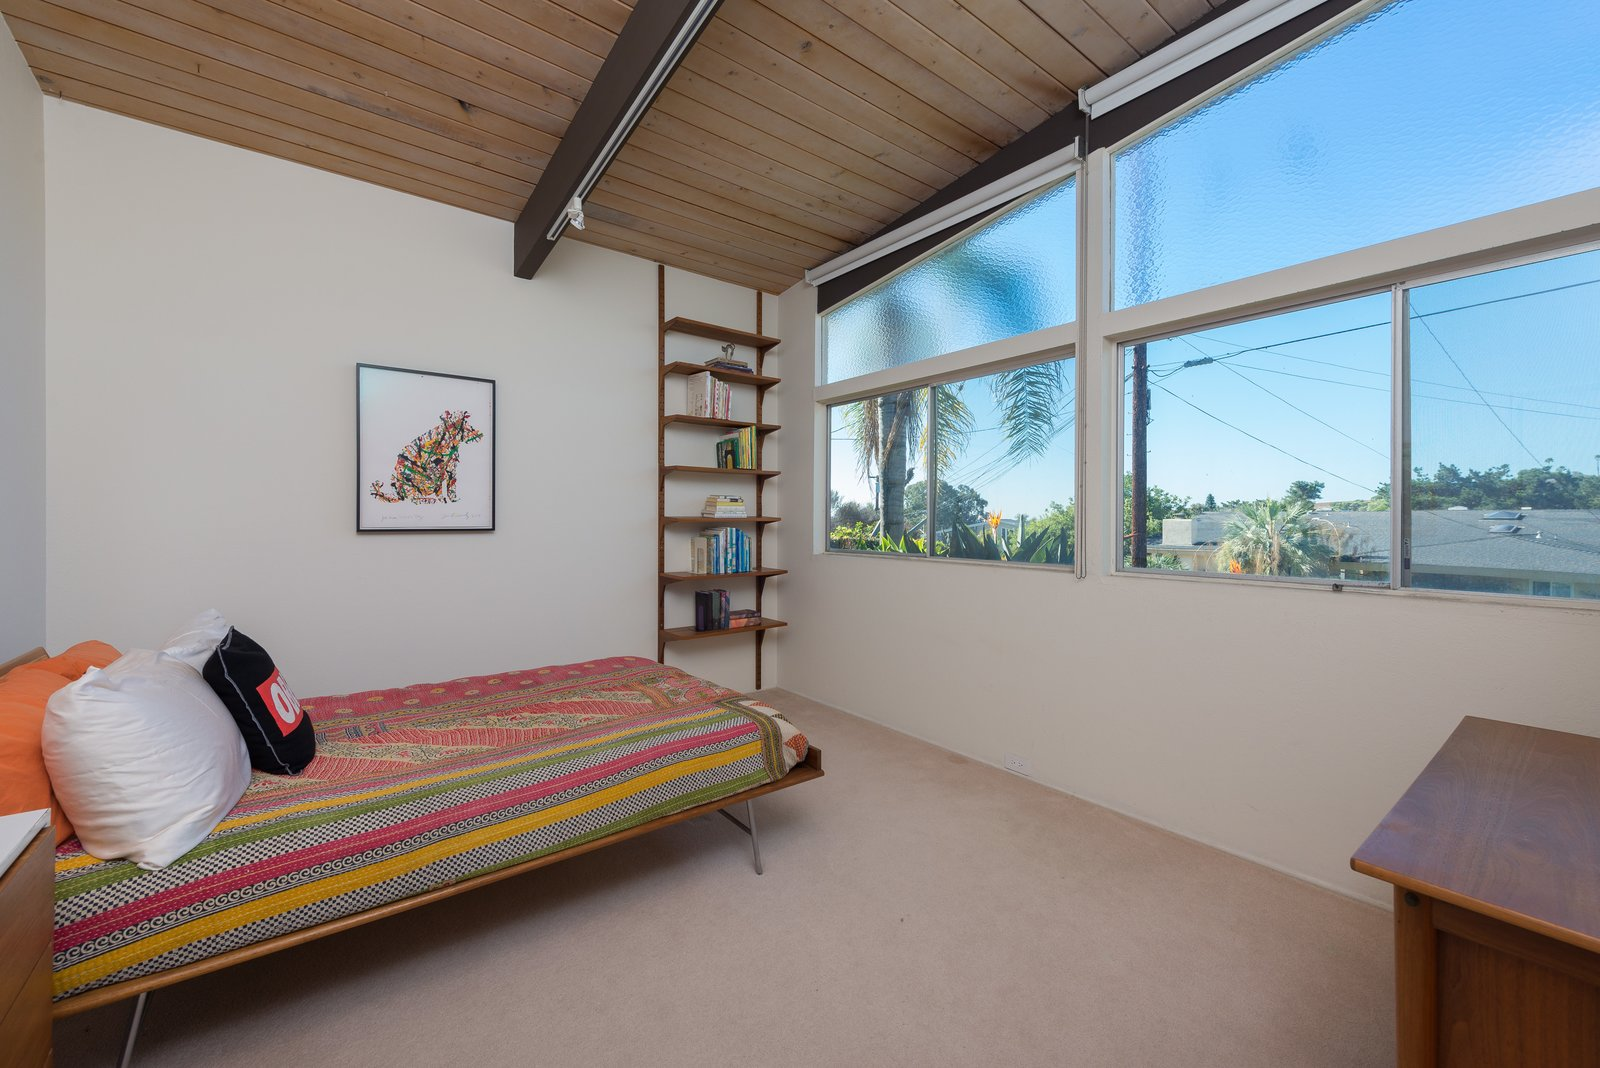 Bedroom, Bed, Dresser, Carpet, Track, and Shelves  Best Bedroom Track Dresser Photos from An Immaculate Midcentury Abode in San Diego Asks $1.55M